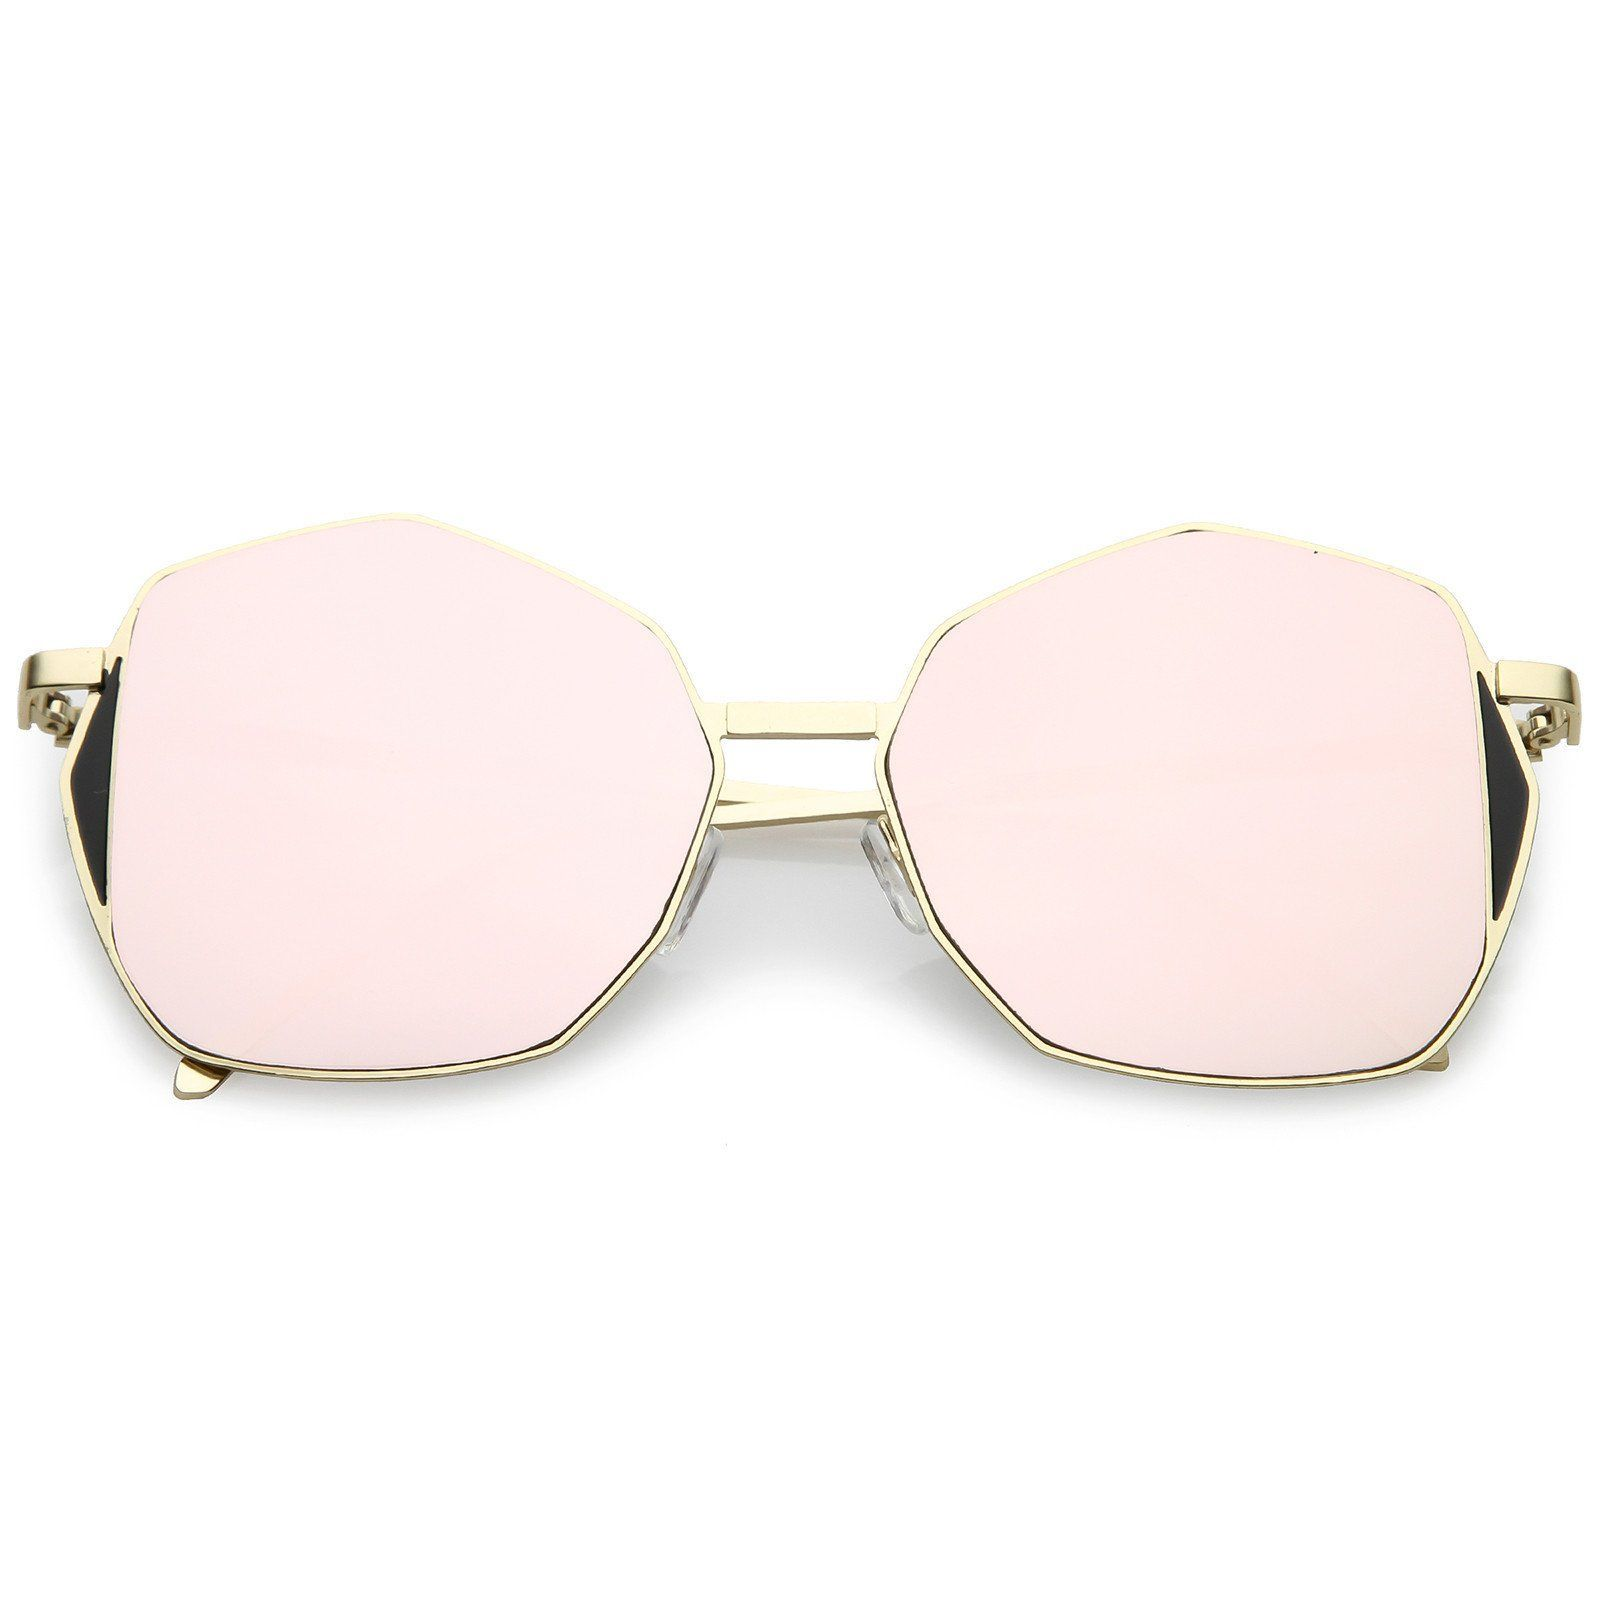 84070924f6 Oversize Geometric Sunglasses Slim Metal Arms Colored Mirror Flat Lens 59mm   mirrored  sunglasses